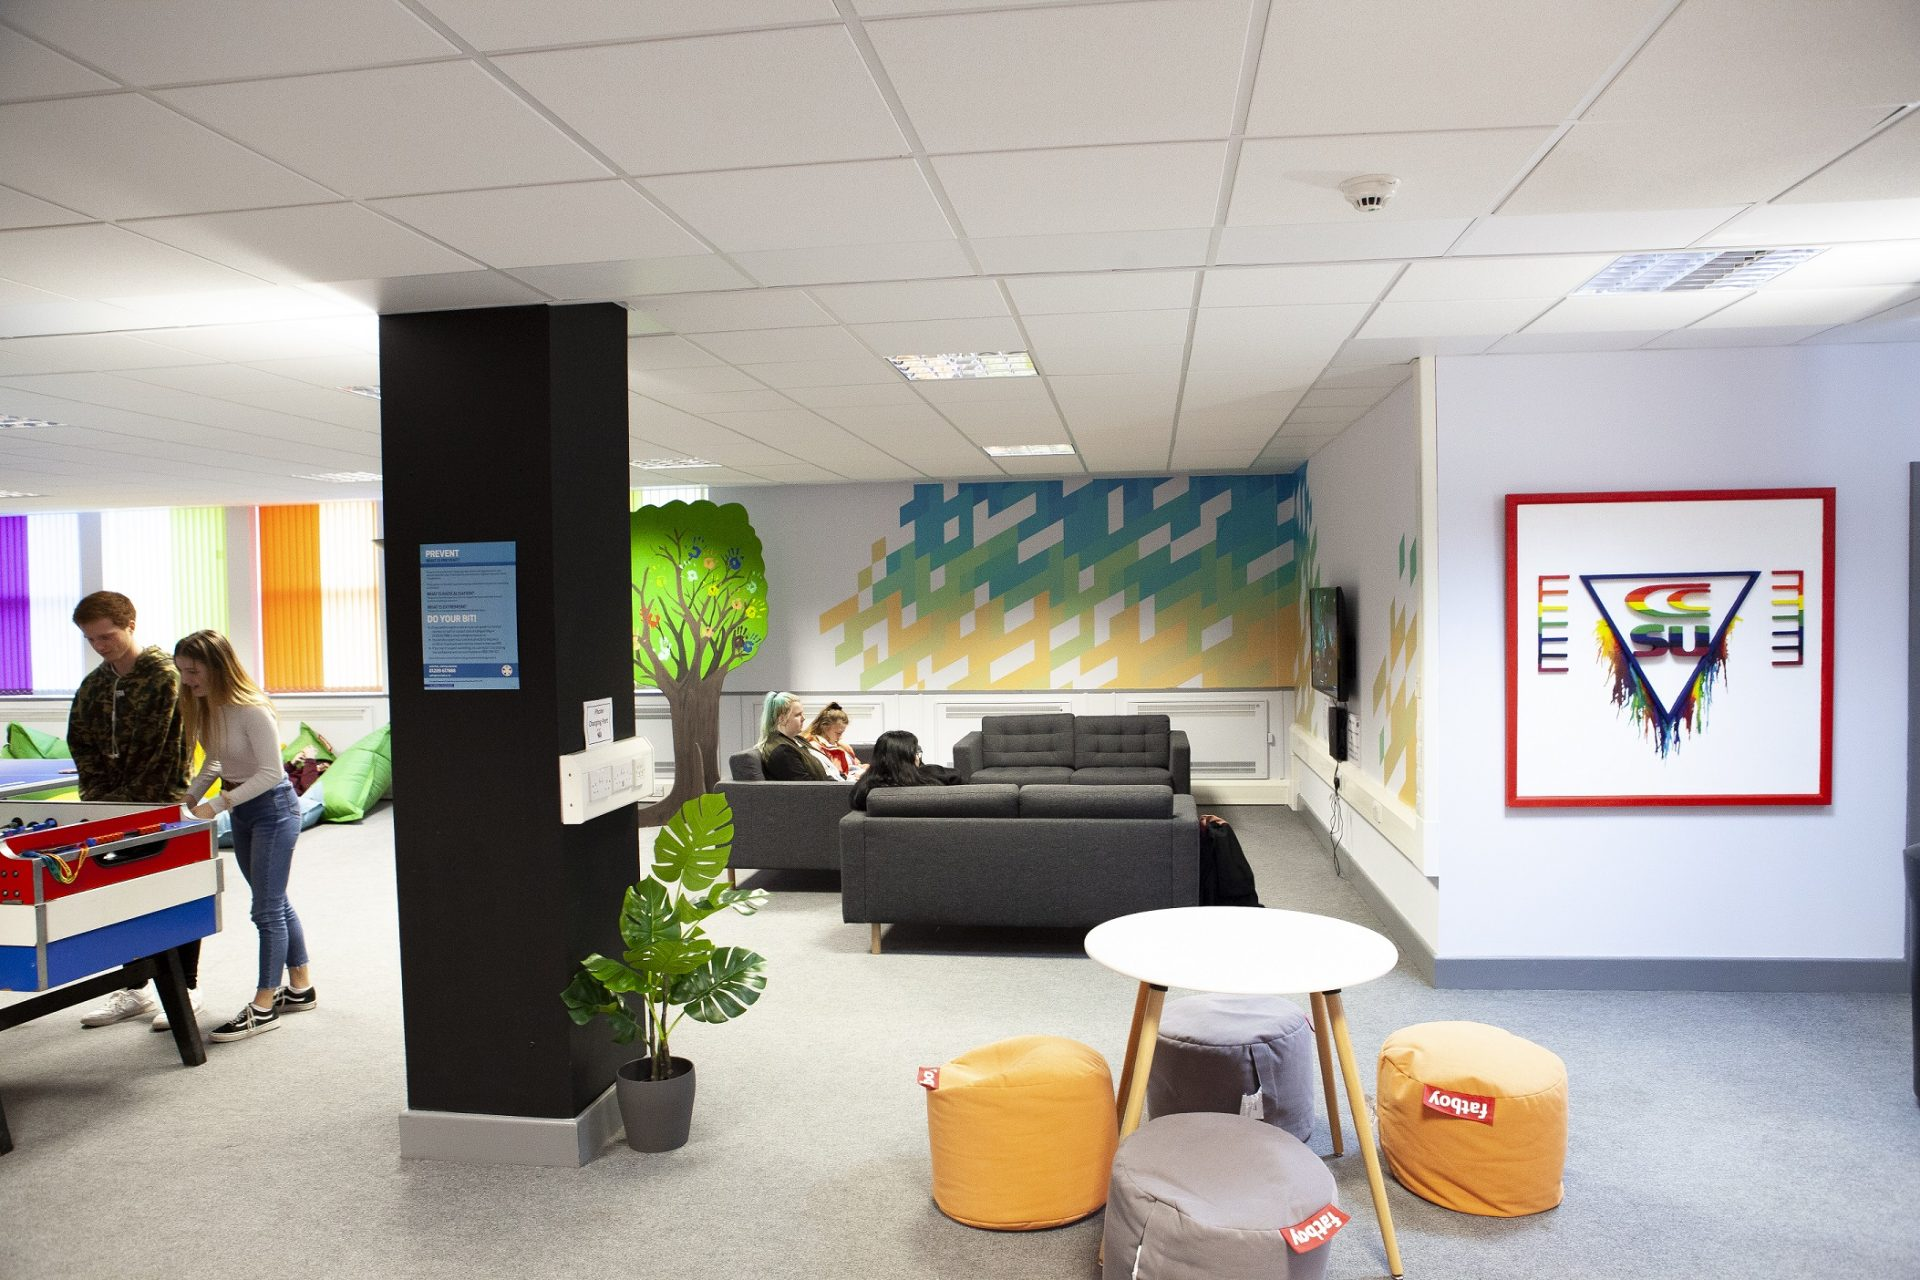 Cornwall College St Austell student zone called The Space - quiet seating area